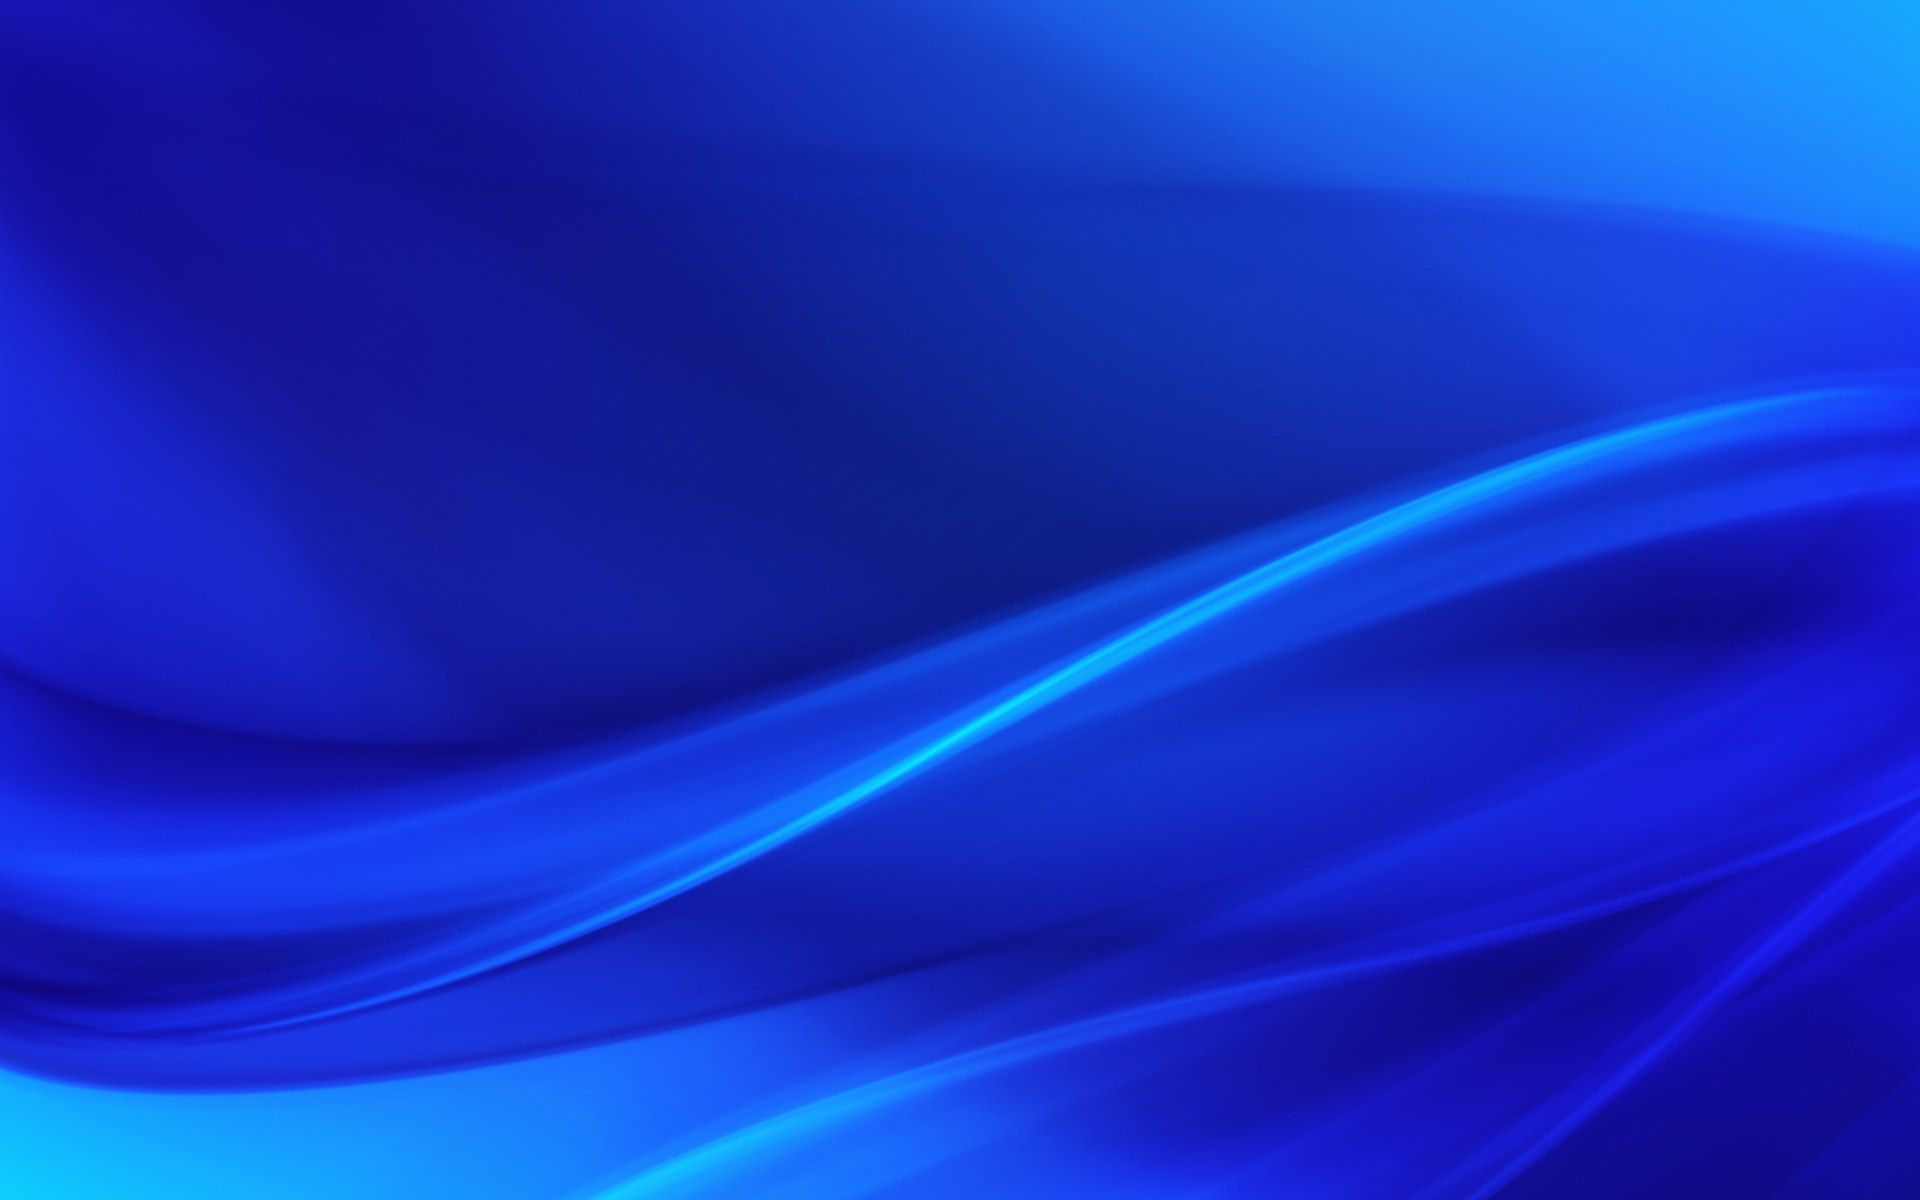 hd wallpapers abstract blue